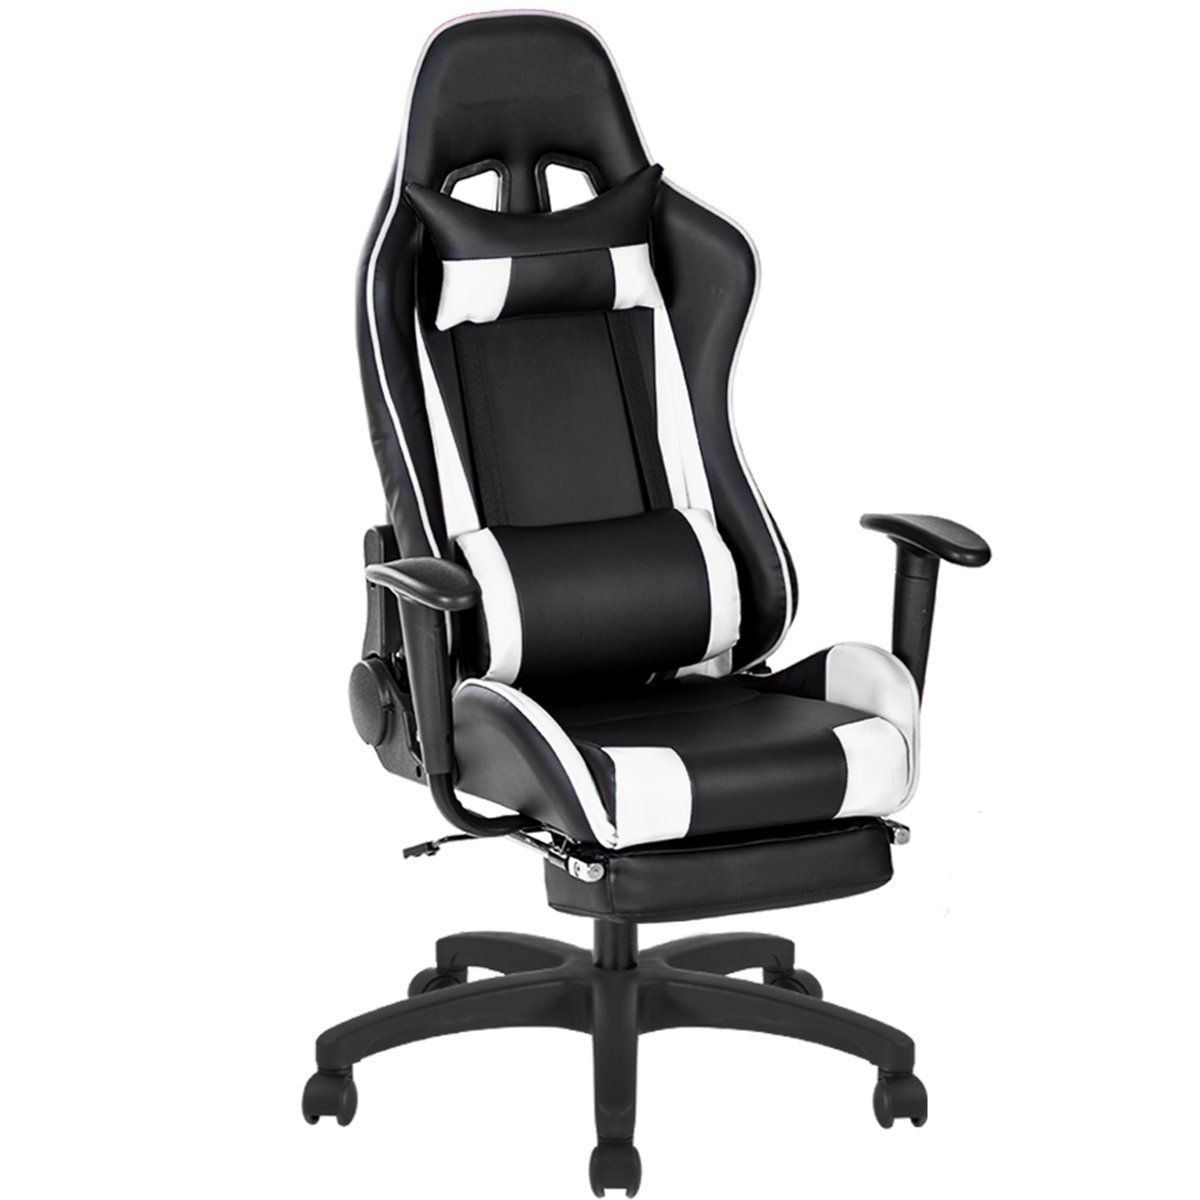 Enjoyable Executive Chair Big And Talljulyfox Ergonomic Leather Gaming Machost Co Dining Chair Design Ideas Machostcouk